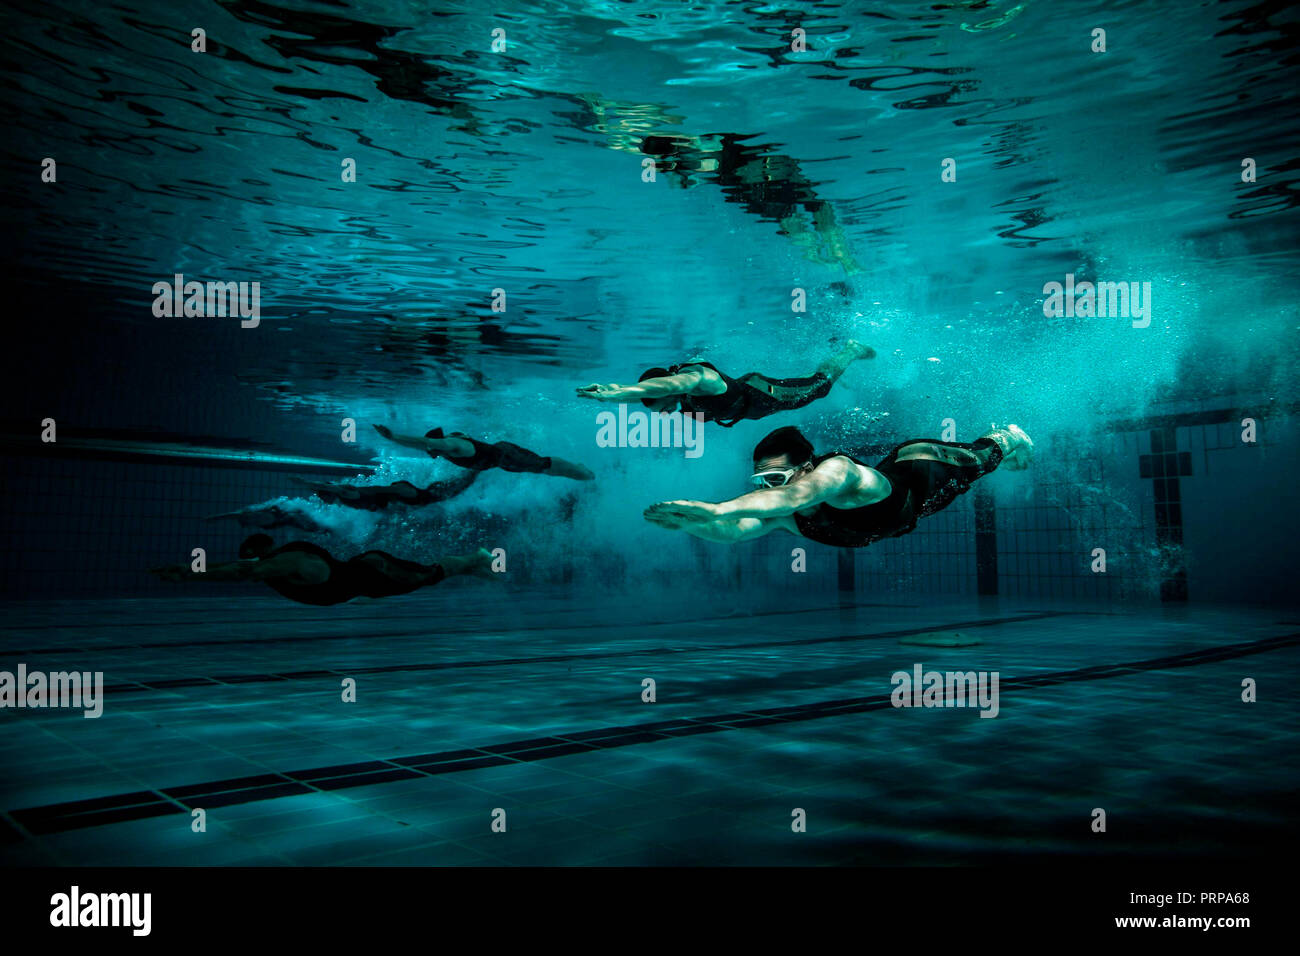 Prod DB © 42 -The Amel Company - Motion Picture Capital - Nostromo Pictures / DR TITAN (THE TITAN) de Lennart Ruff 2018 GB/ESP./USA science fiction; s Stock Photo